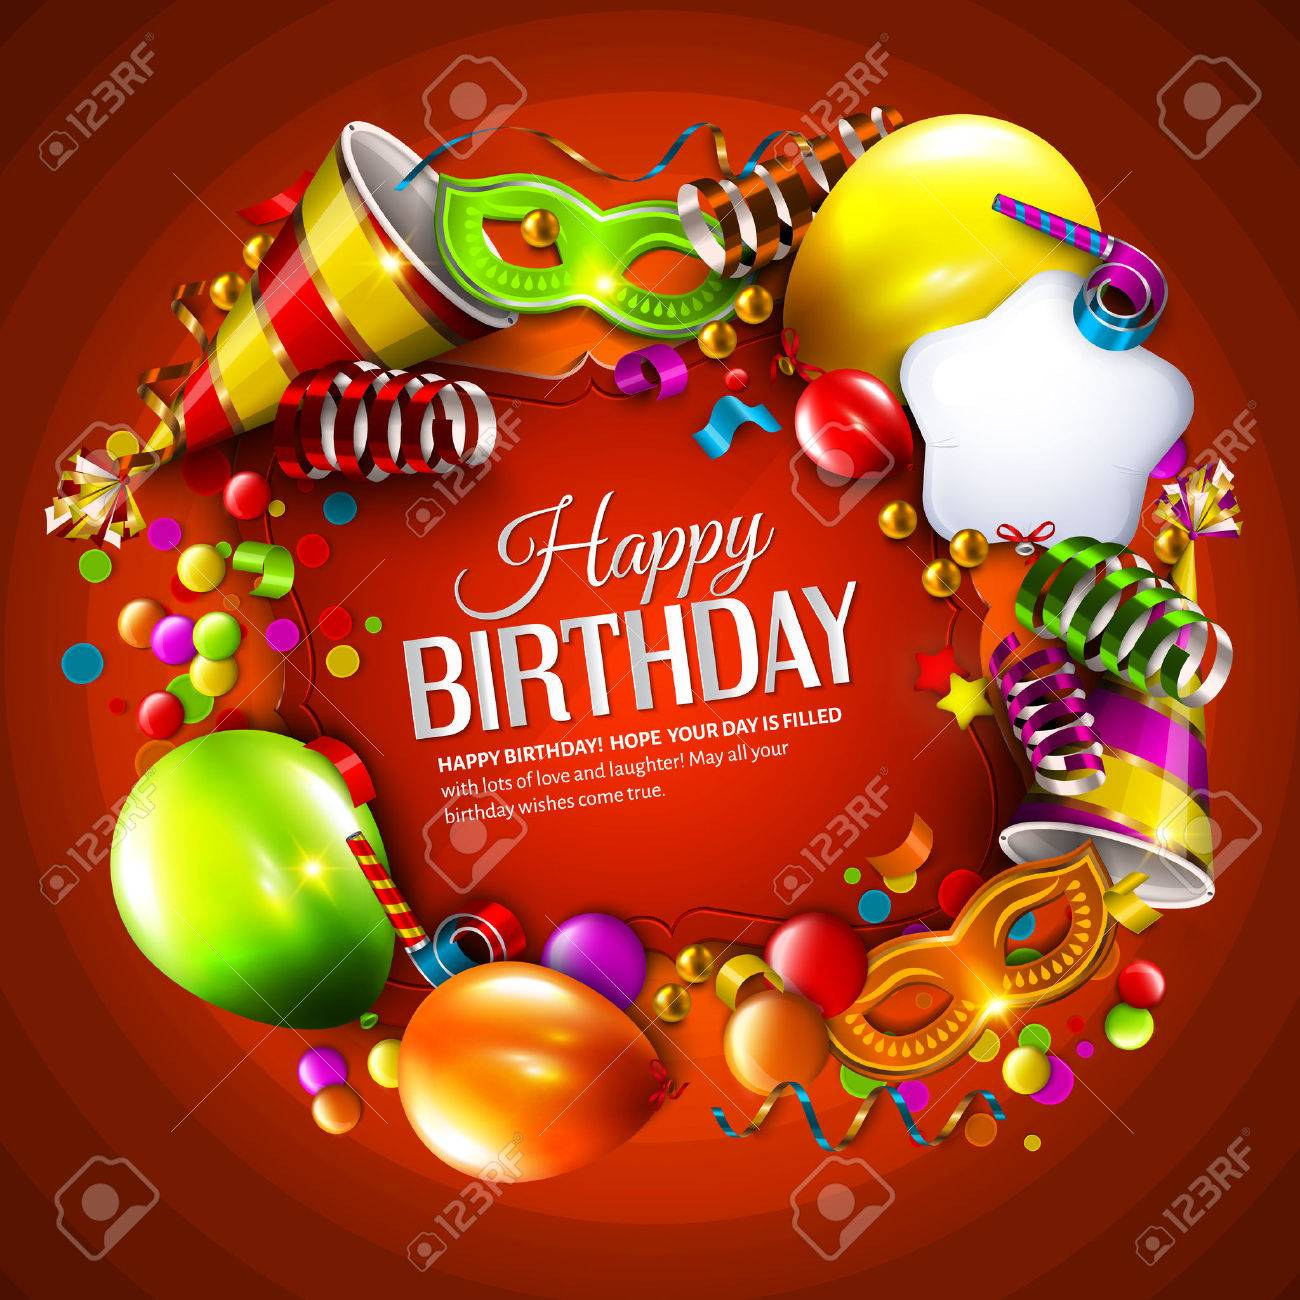 Vector birthday card with colorful balloons, curling ribbons, carnival mask, hat and confetti on orange background. - 46174212